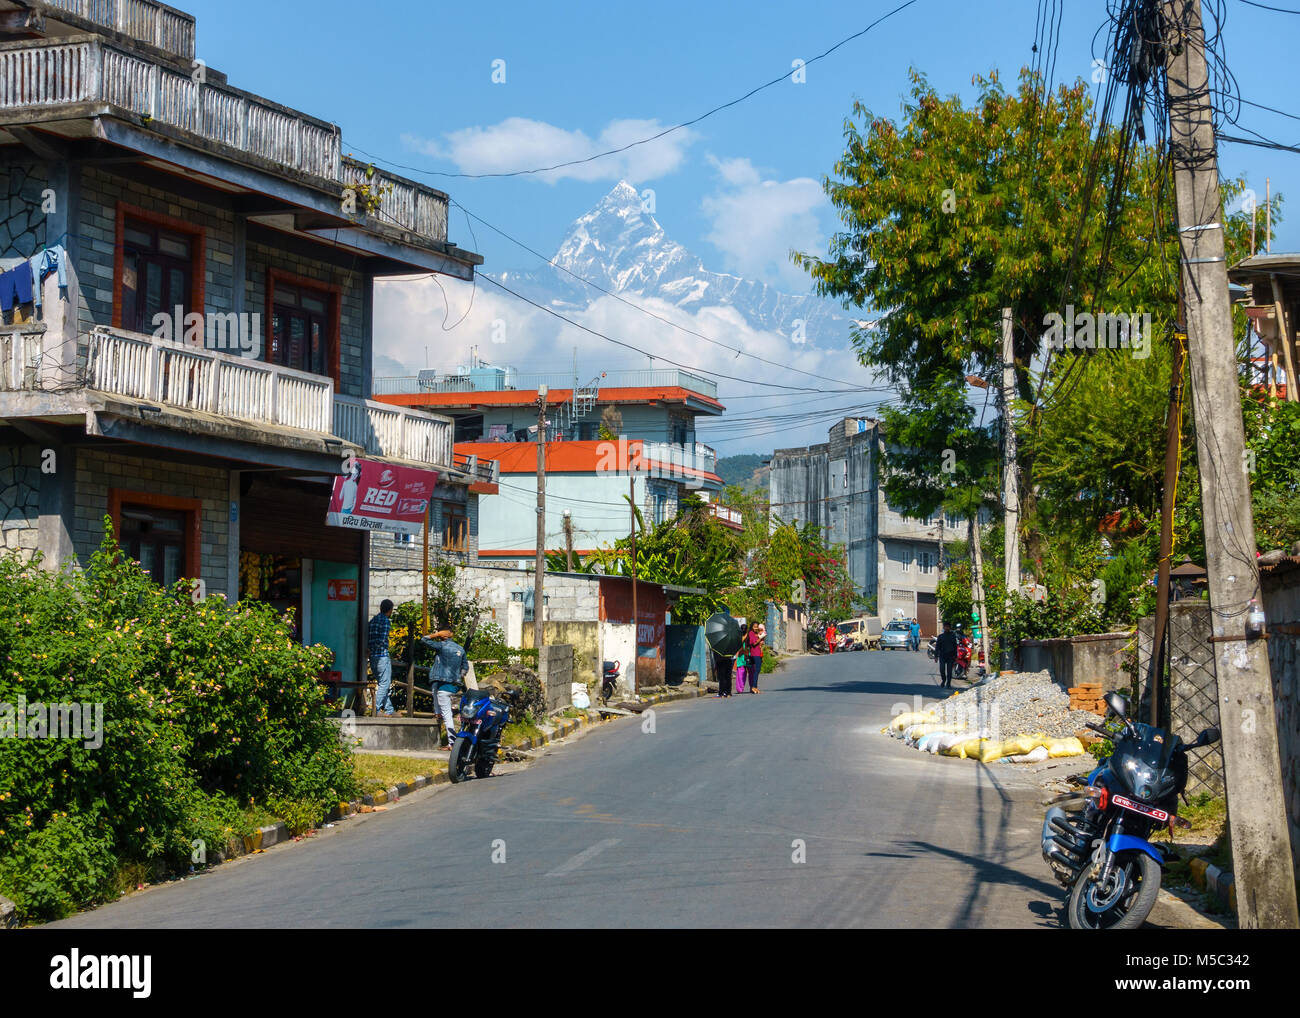 POKHARA, NEPAL - CIRCA NOVEMBER 2017: A street with the Machapuchare in the background. - Stock Image